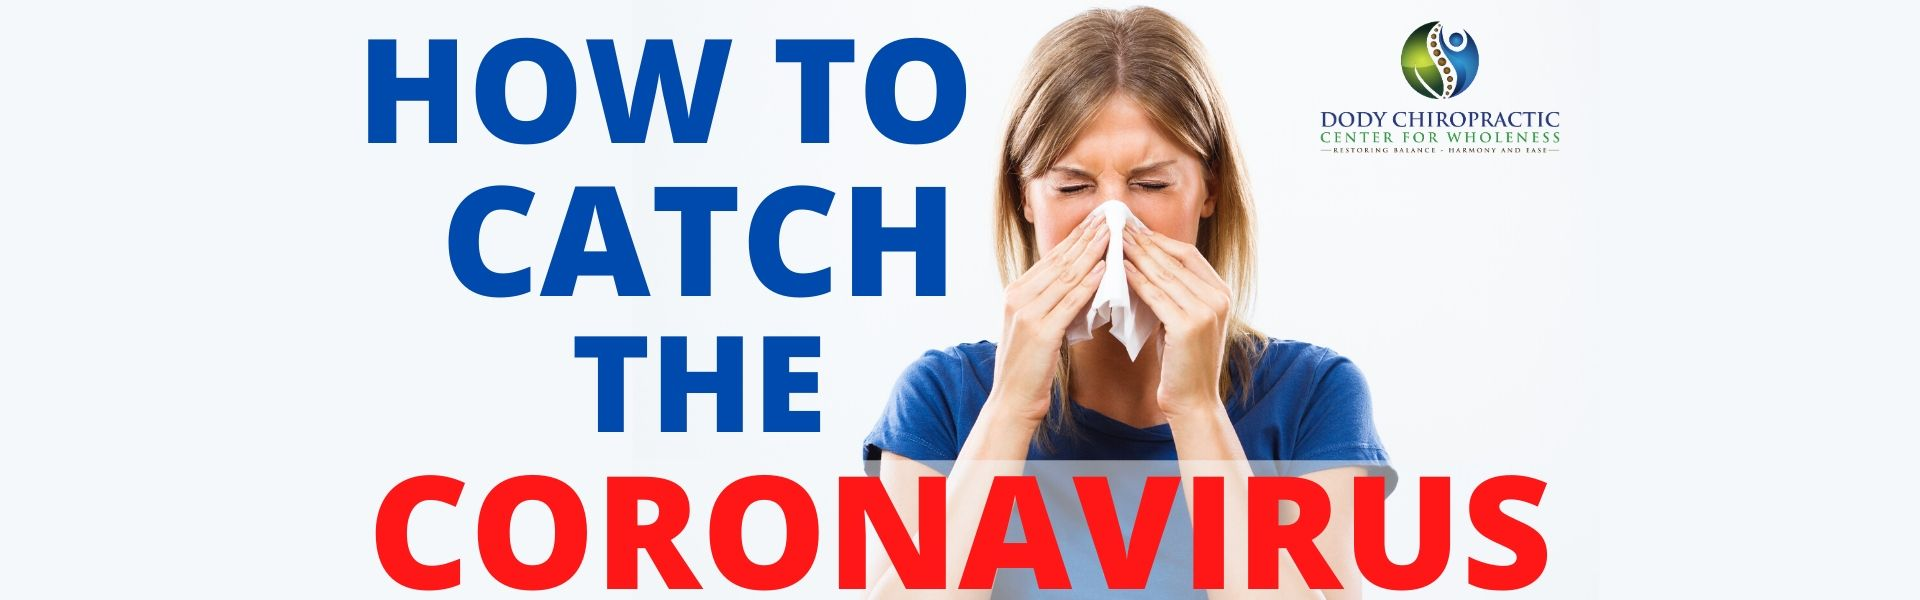 how to catch the coronavirus